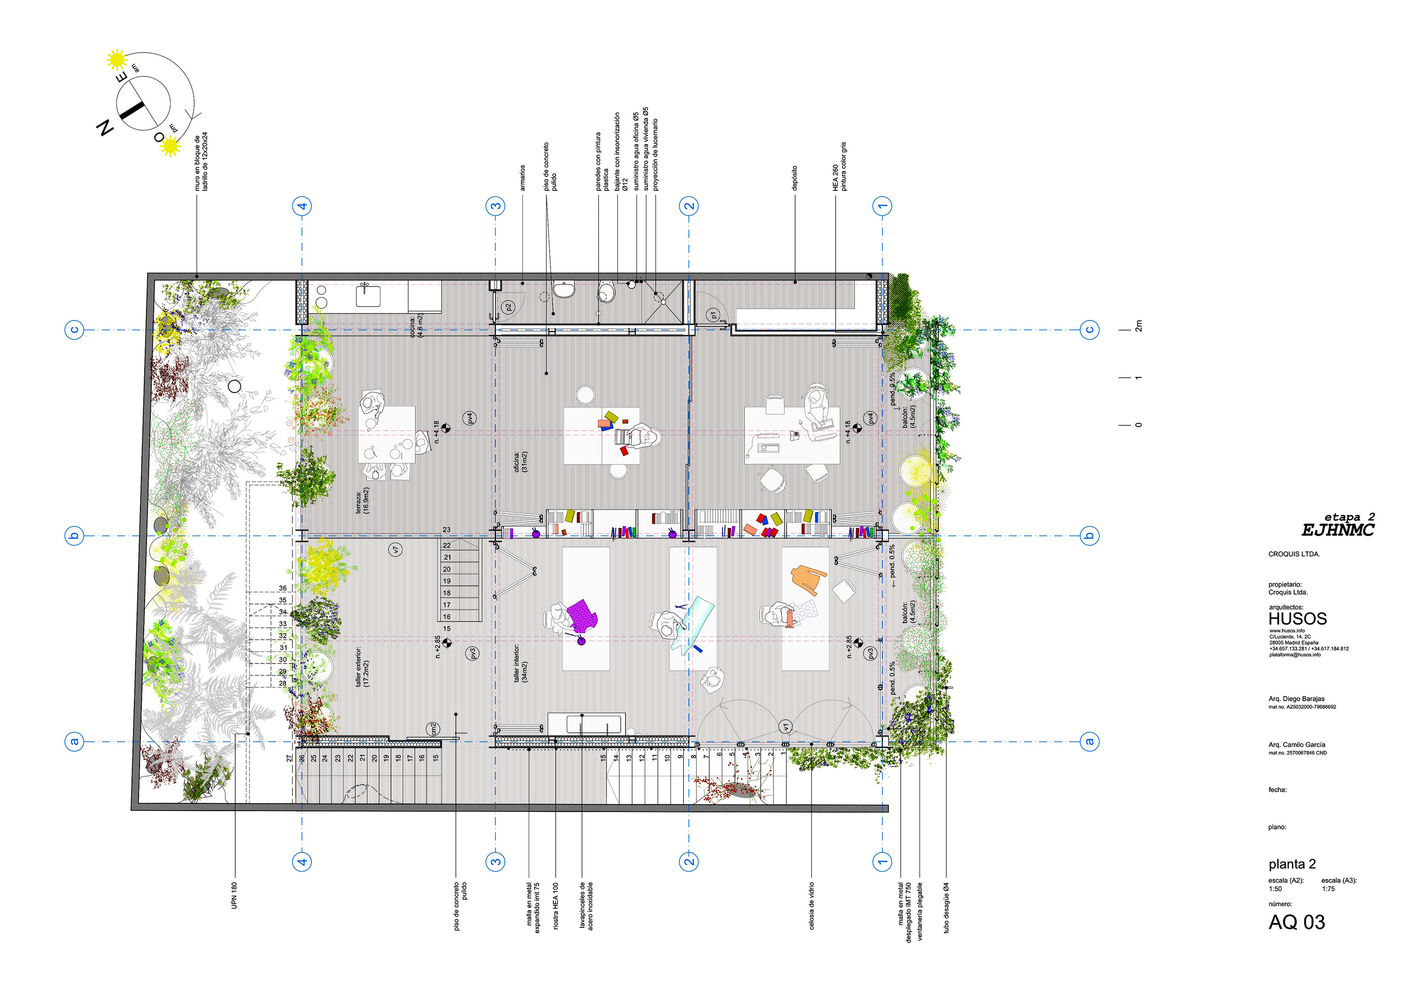 Superb Bioclimatic Prototype Of A Host And Nectar Garden Building,Second Floor Plan